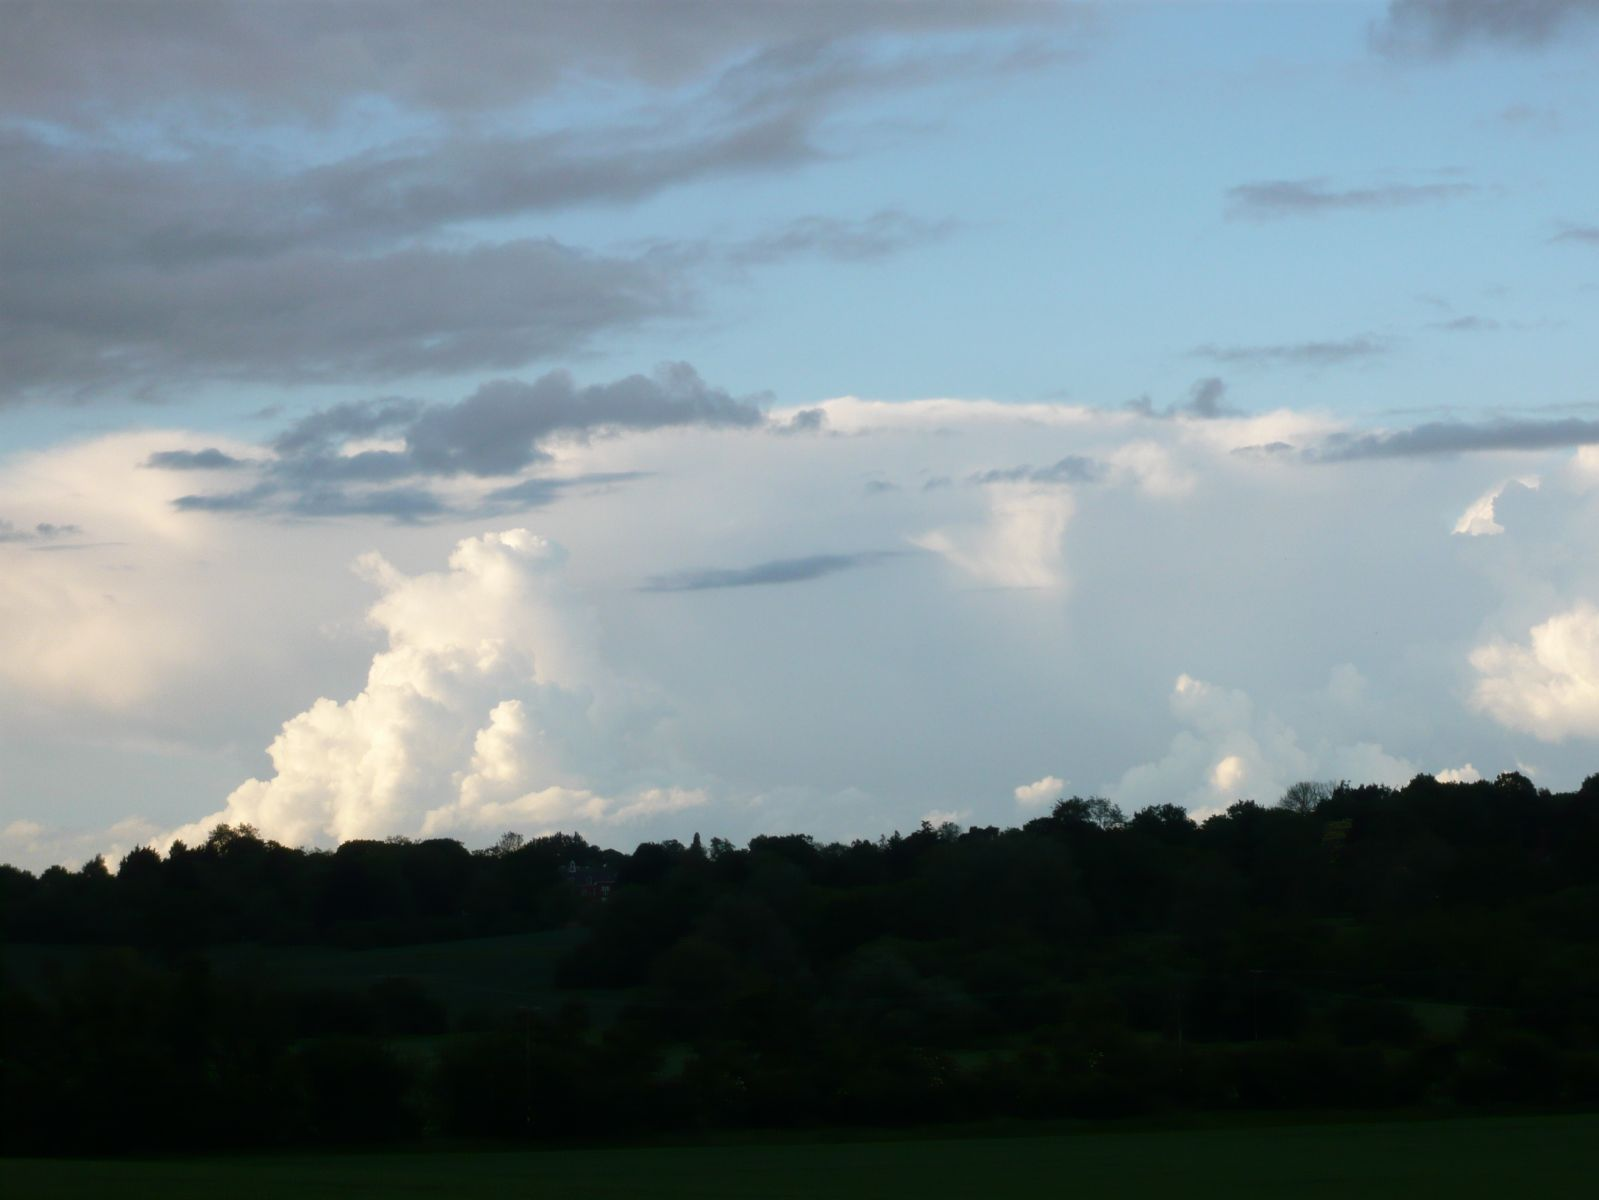 Anvil forming, late afternoon in East Essex - 24th May 2014